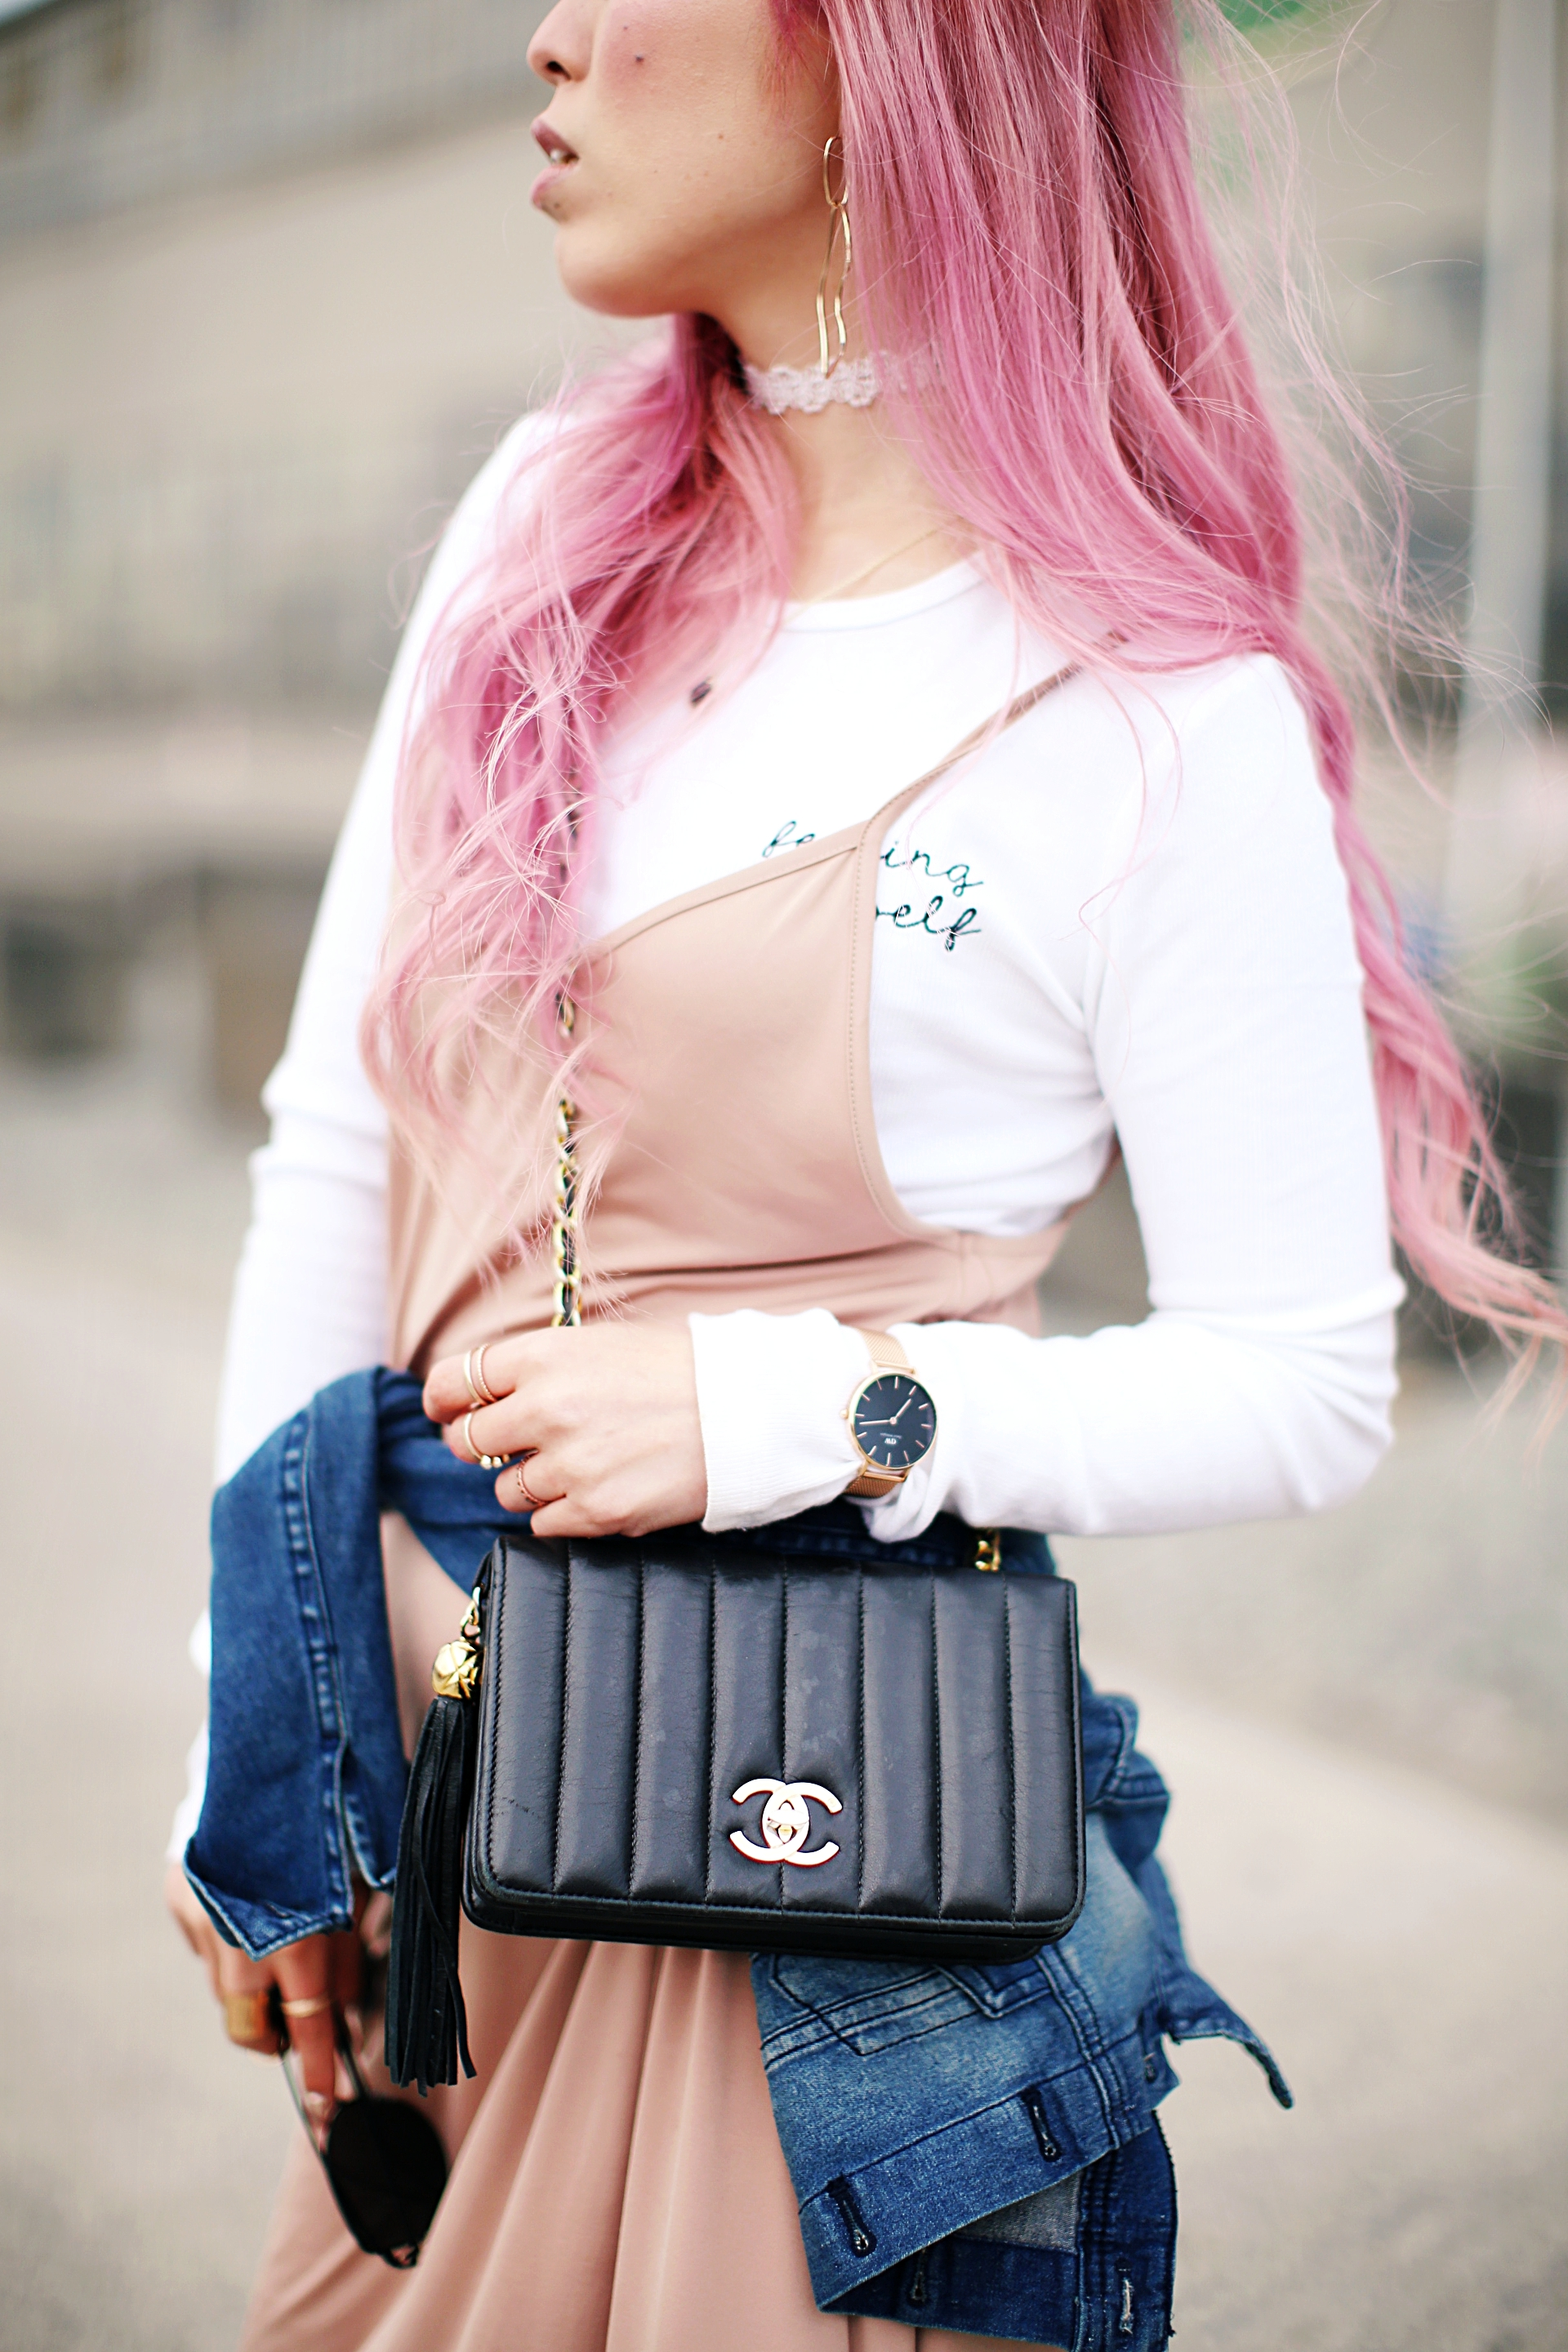 Forever 21 Long sleeve crop top_ZARA blush slip dress_Adidas Super Star sneakers_Vintage Chanel crossbodybag_Daniel Wellington Petite rose gold watch_Guess denim jacket_Aika's Love Closet_Seattle Fashion style blogger_Japanese_pink hair_Topknot hair 2